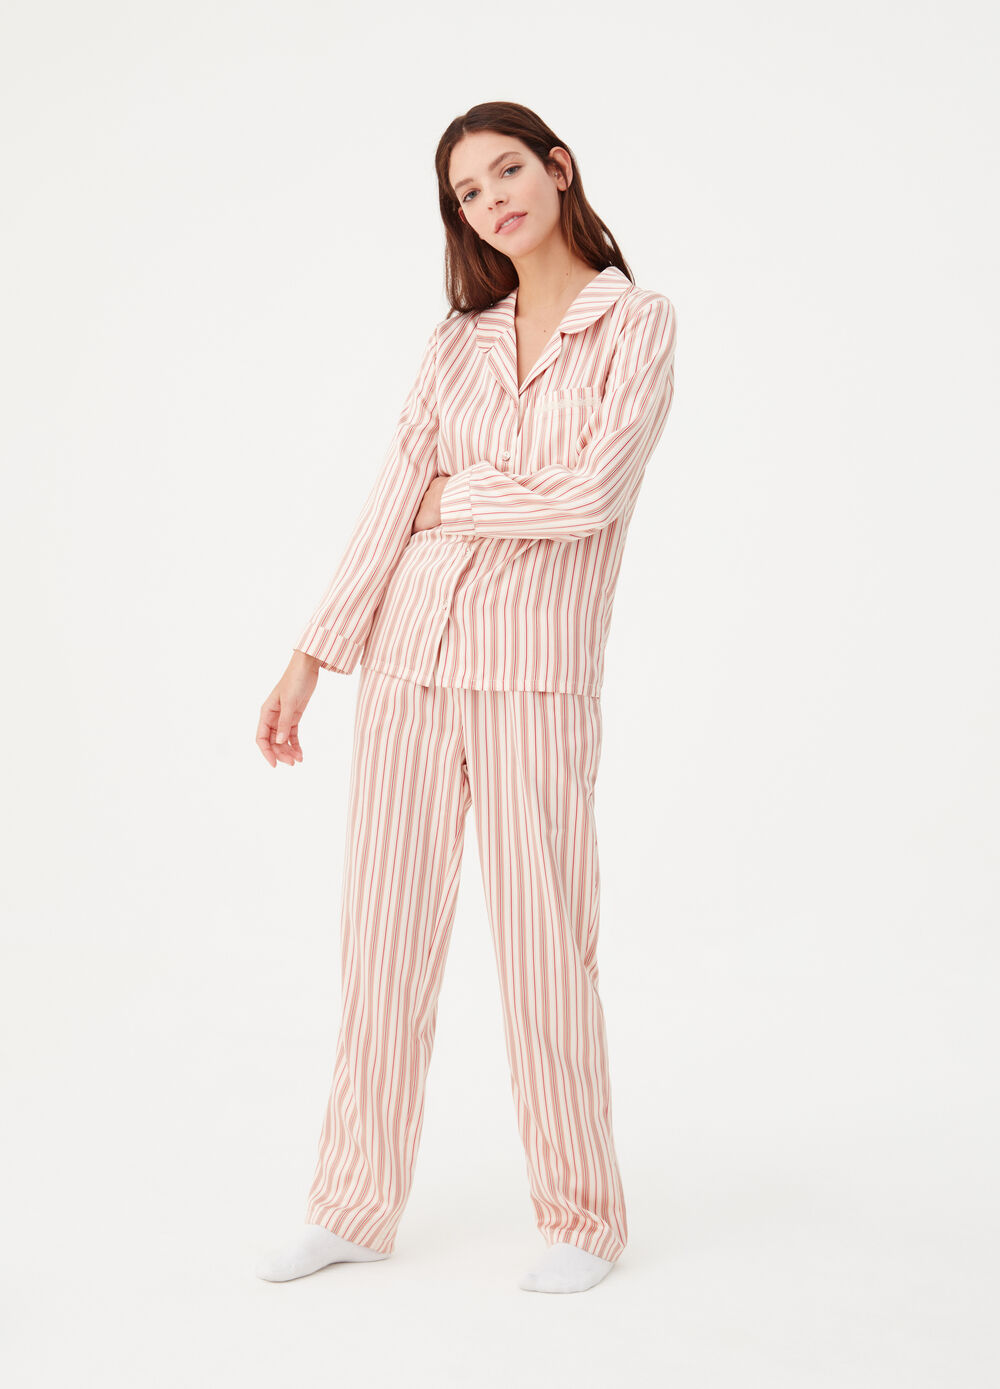 Satin nightshirt with striped pocket